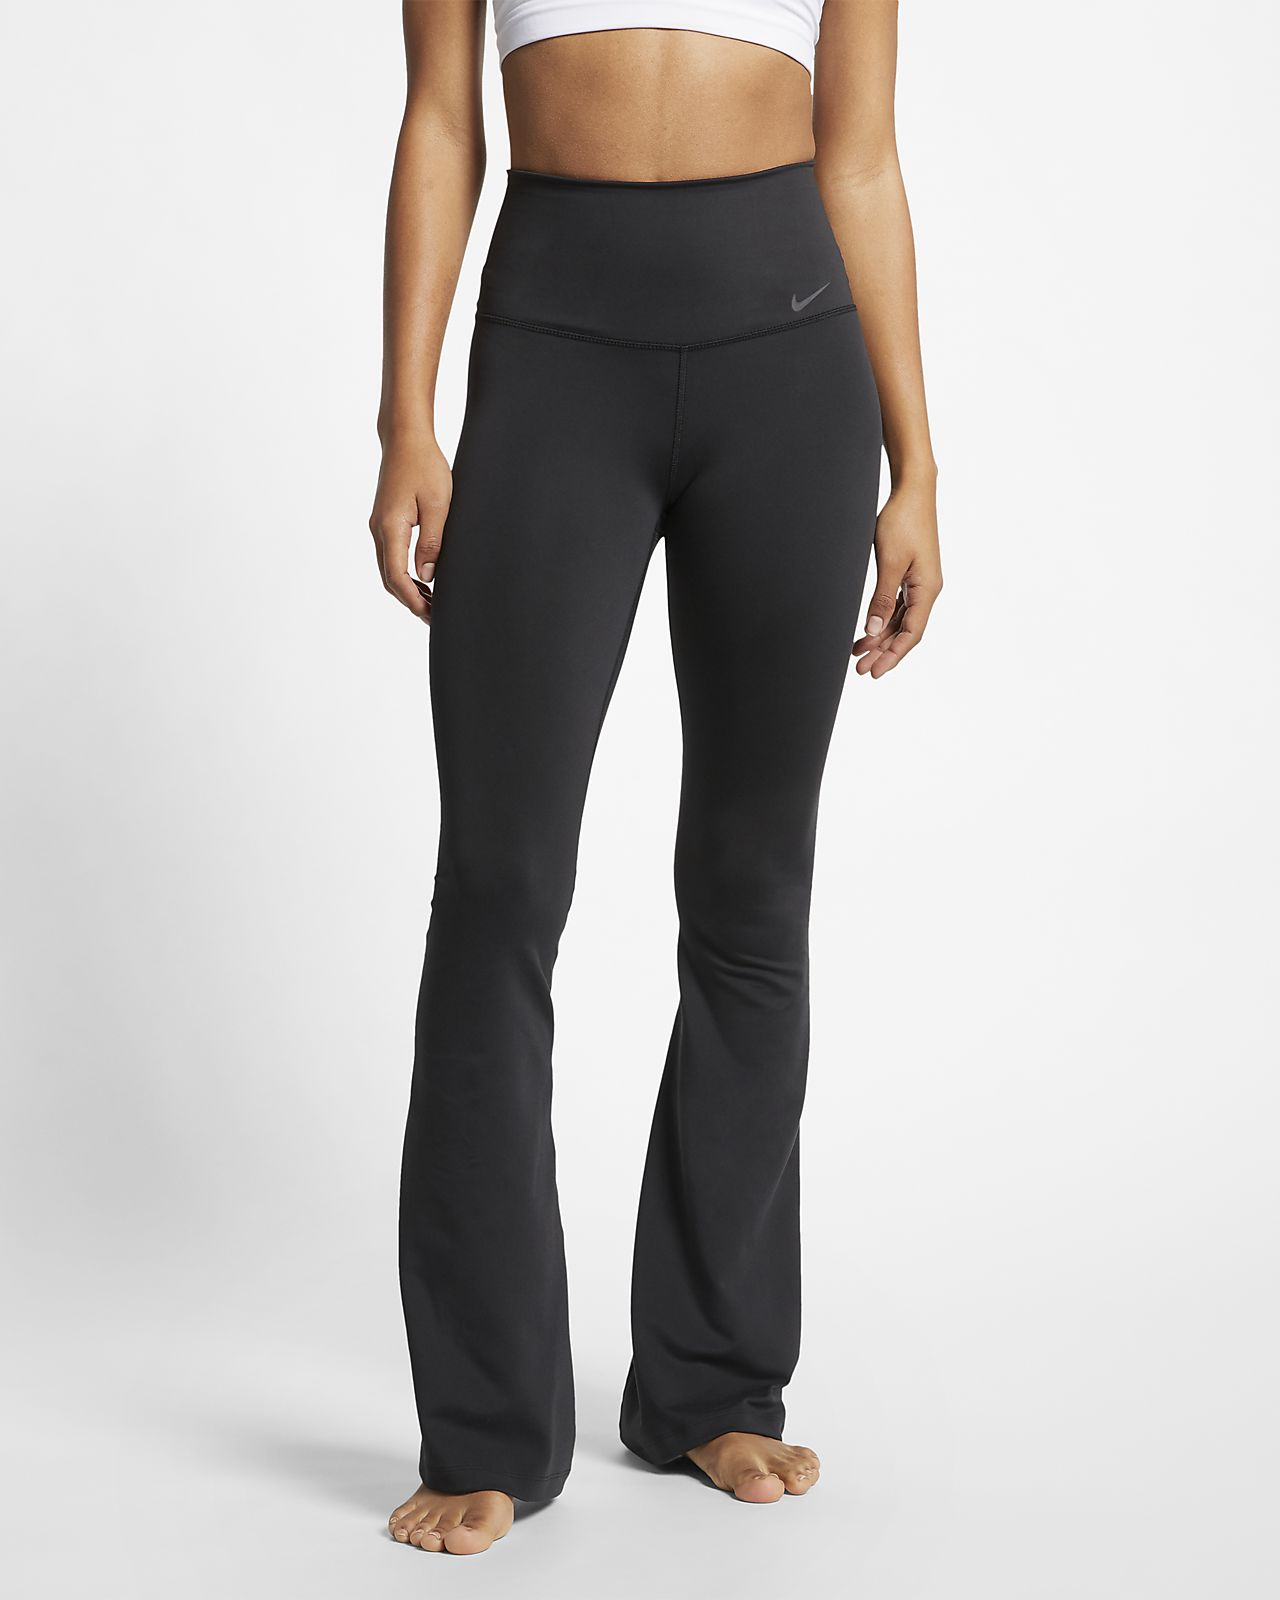 Nike Power Dri-FIT Women's Training Tights